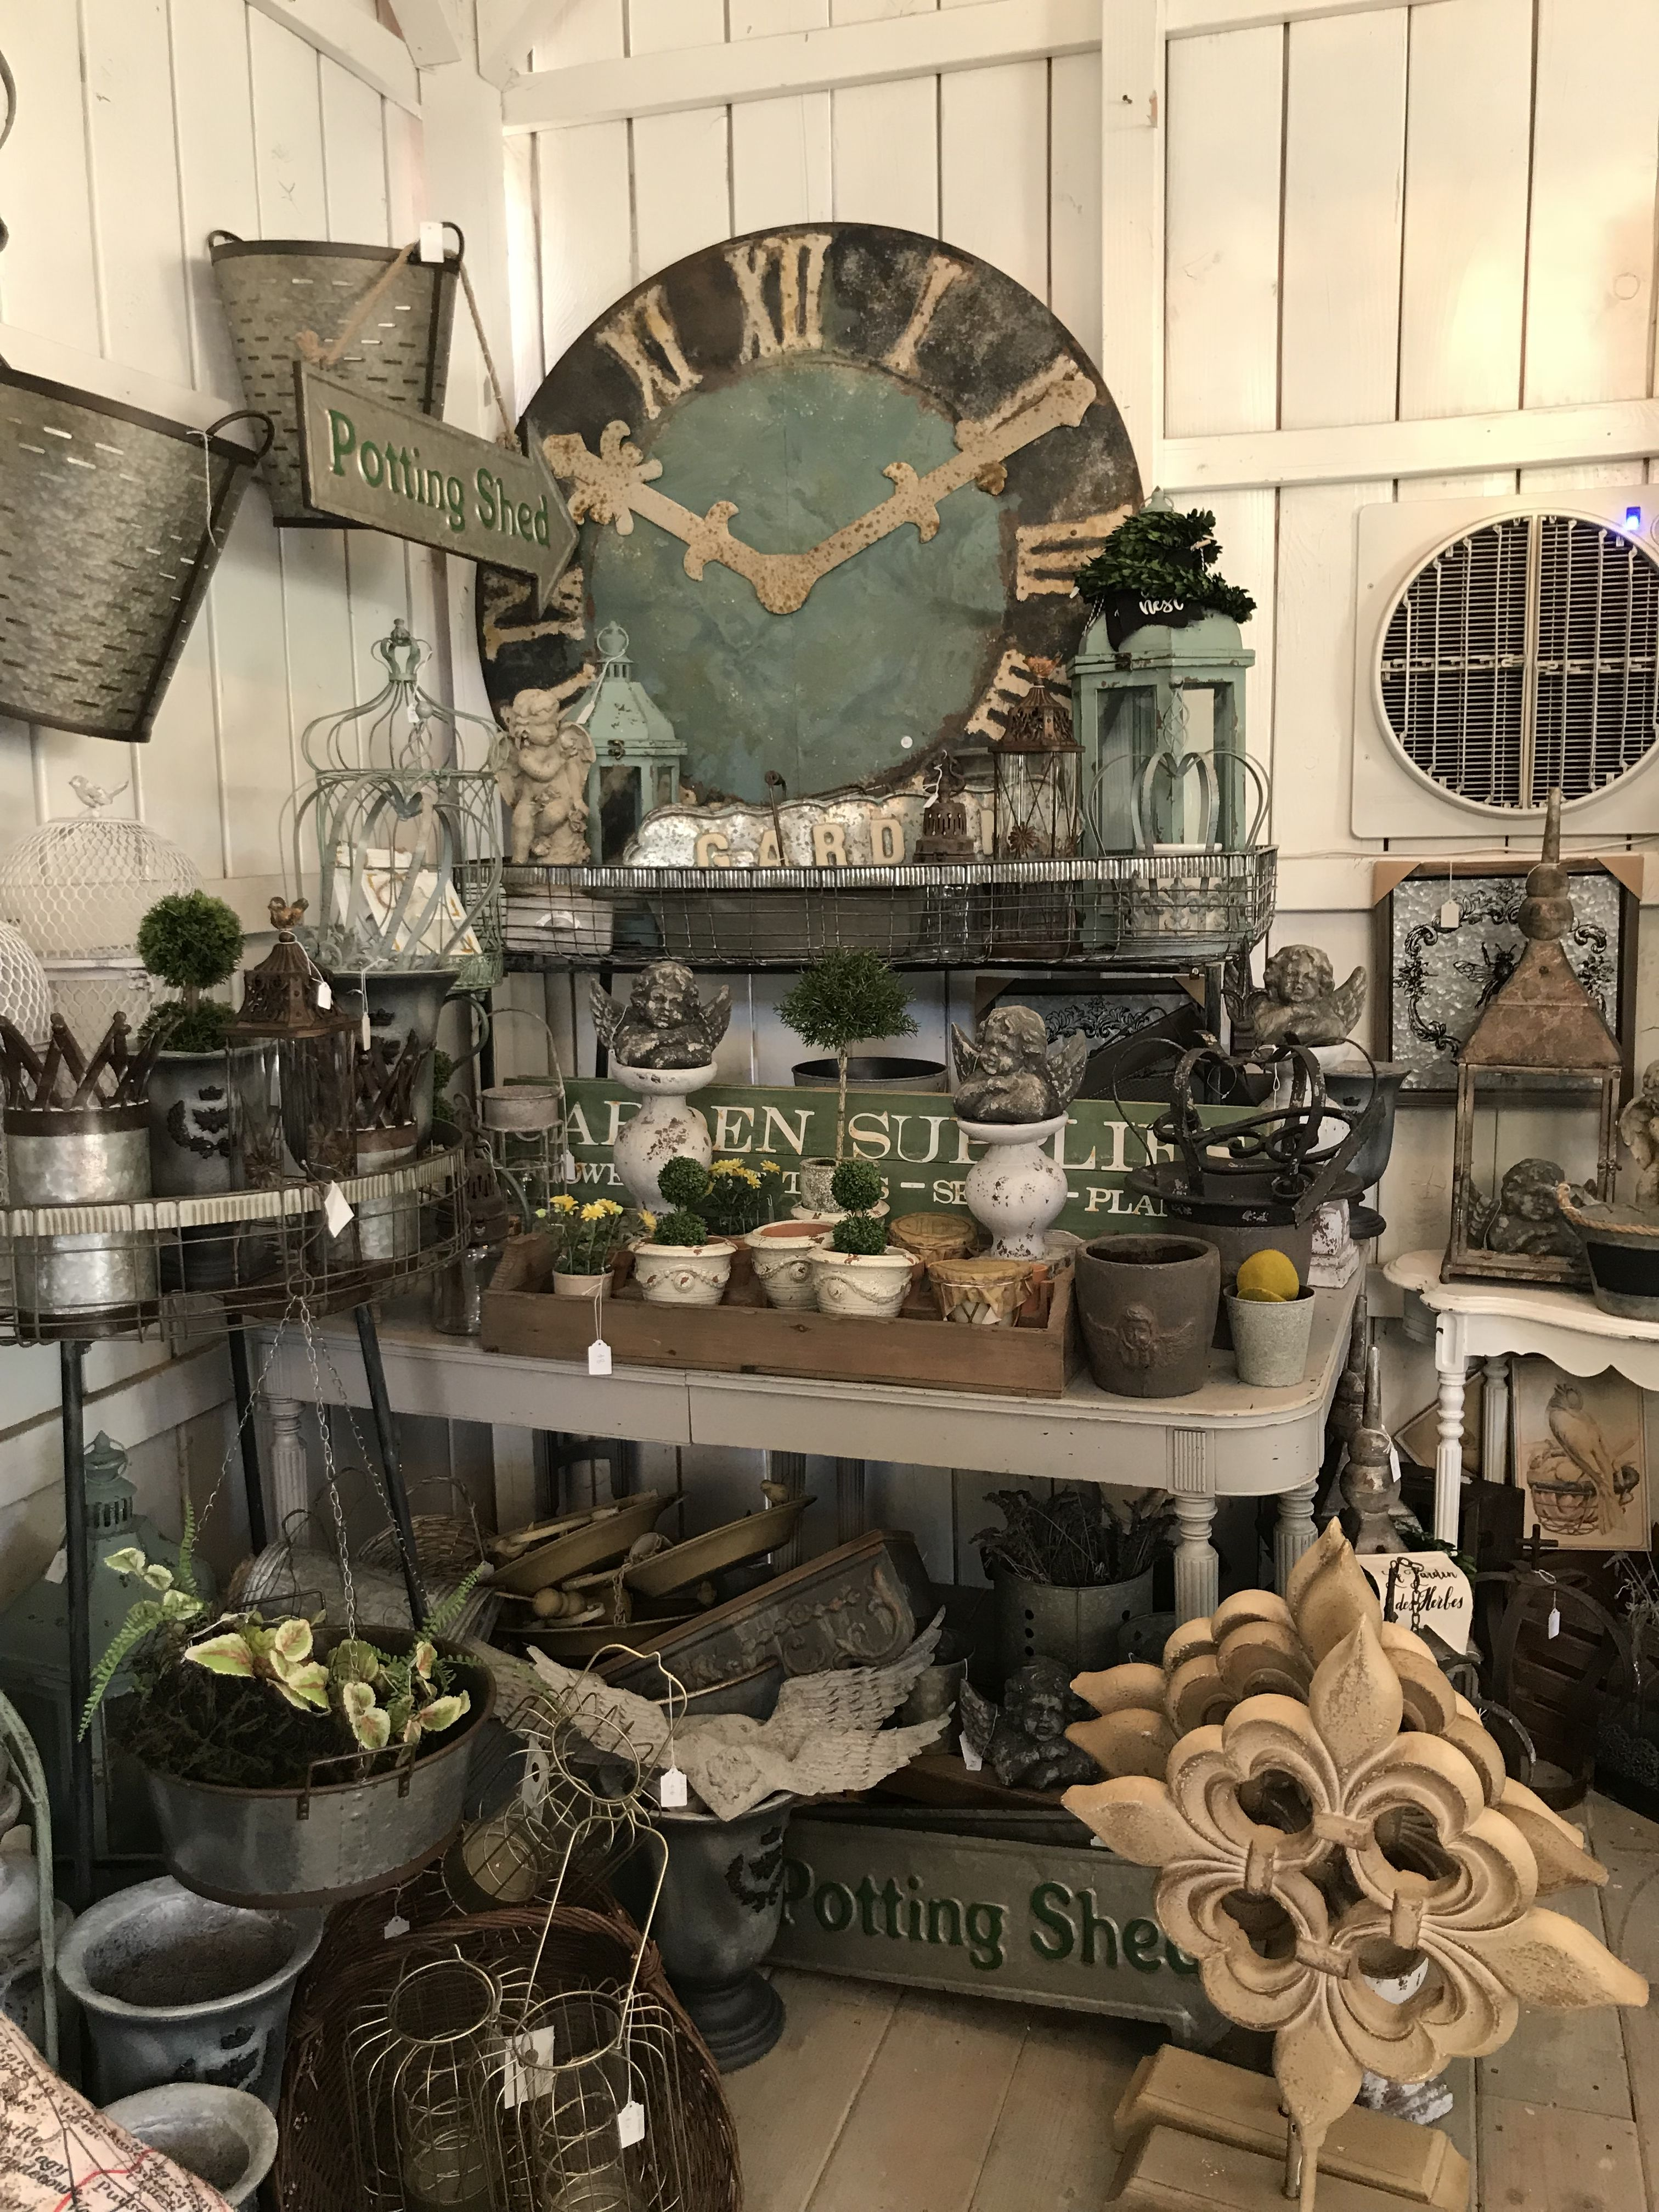 Albert Ladenausstattung Pin By Yvonne S Franklin On Booth Set Up In 2019 Pinterest